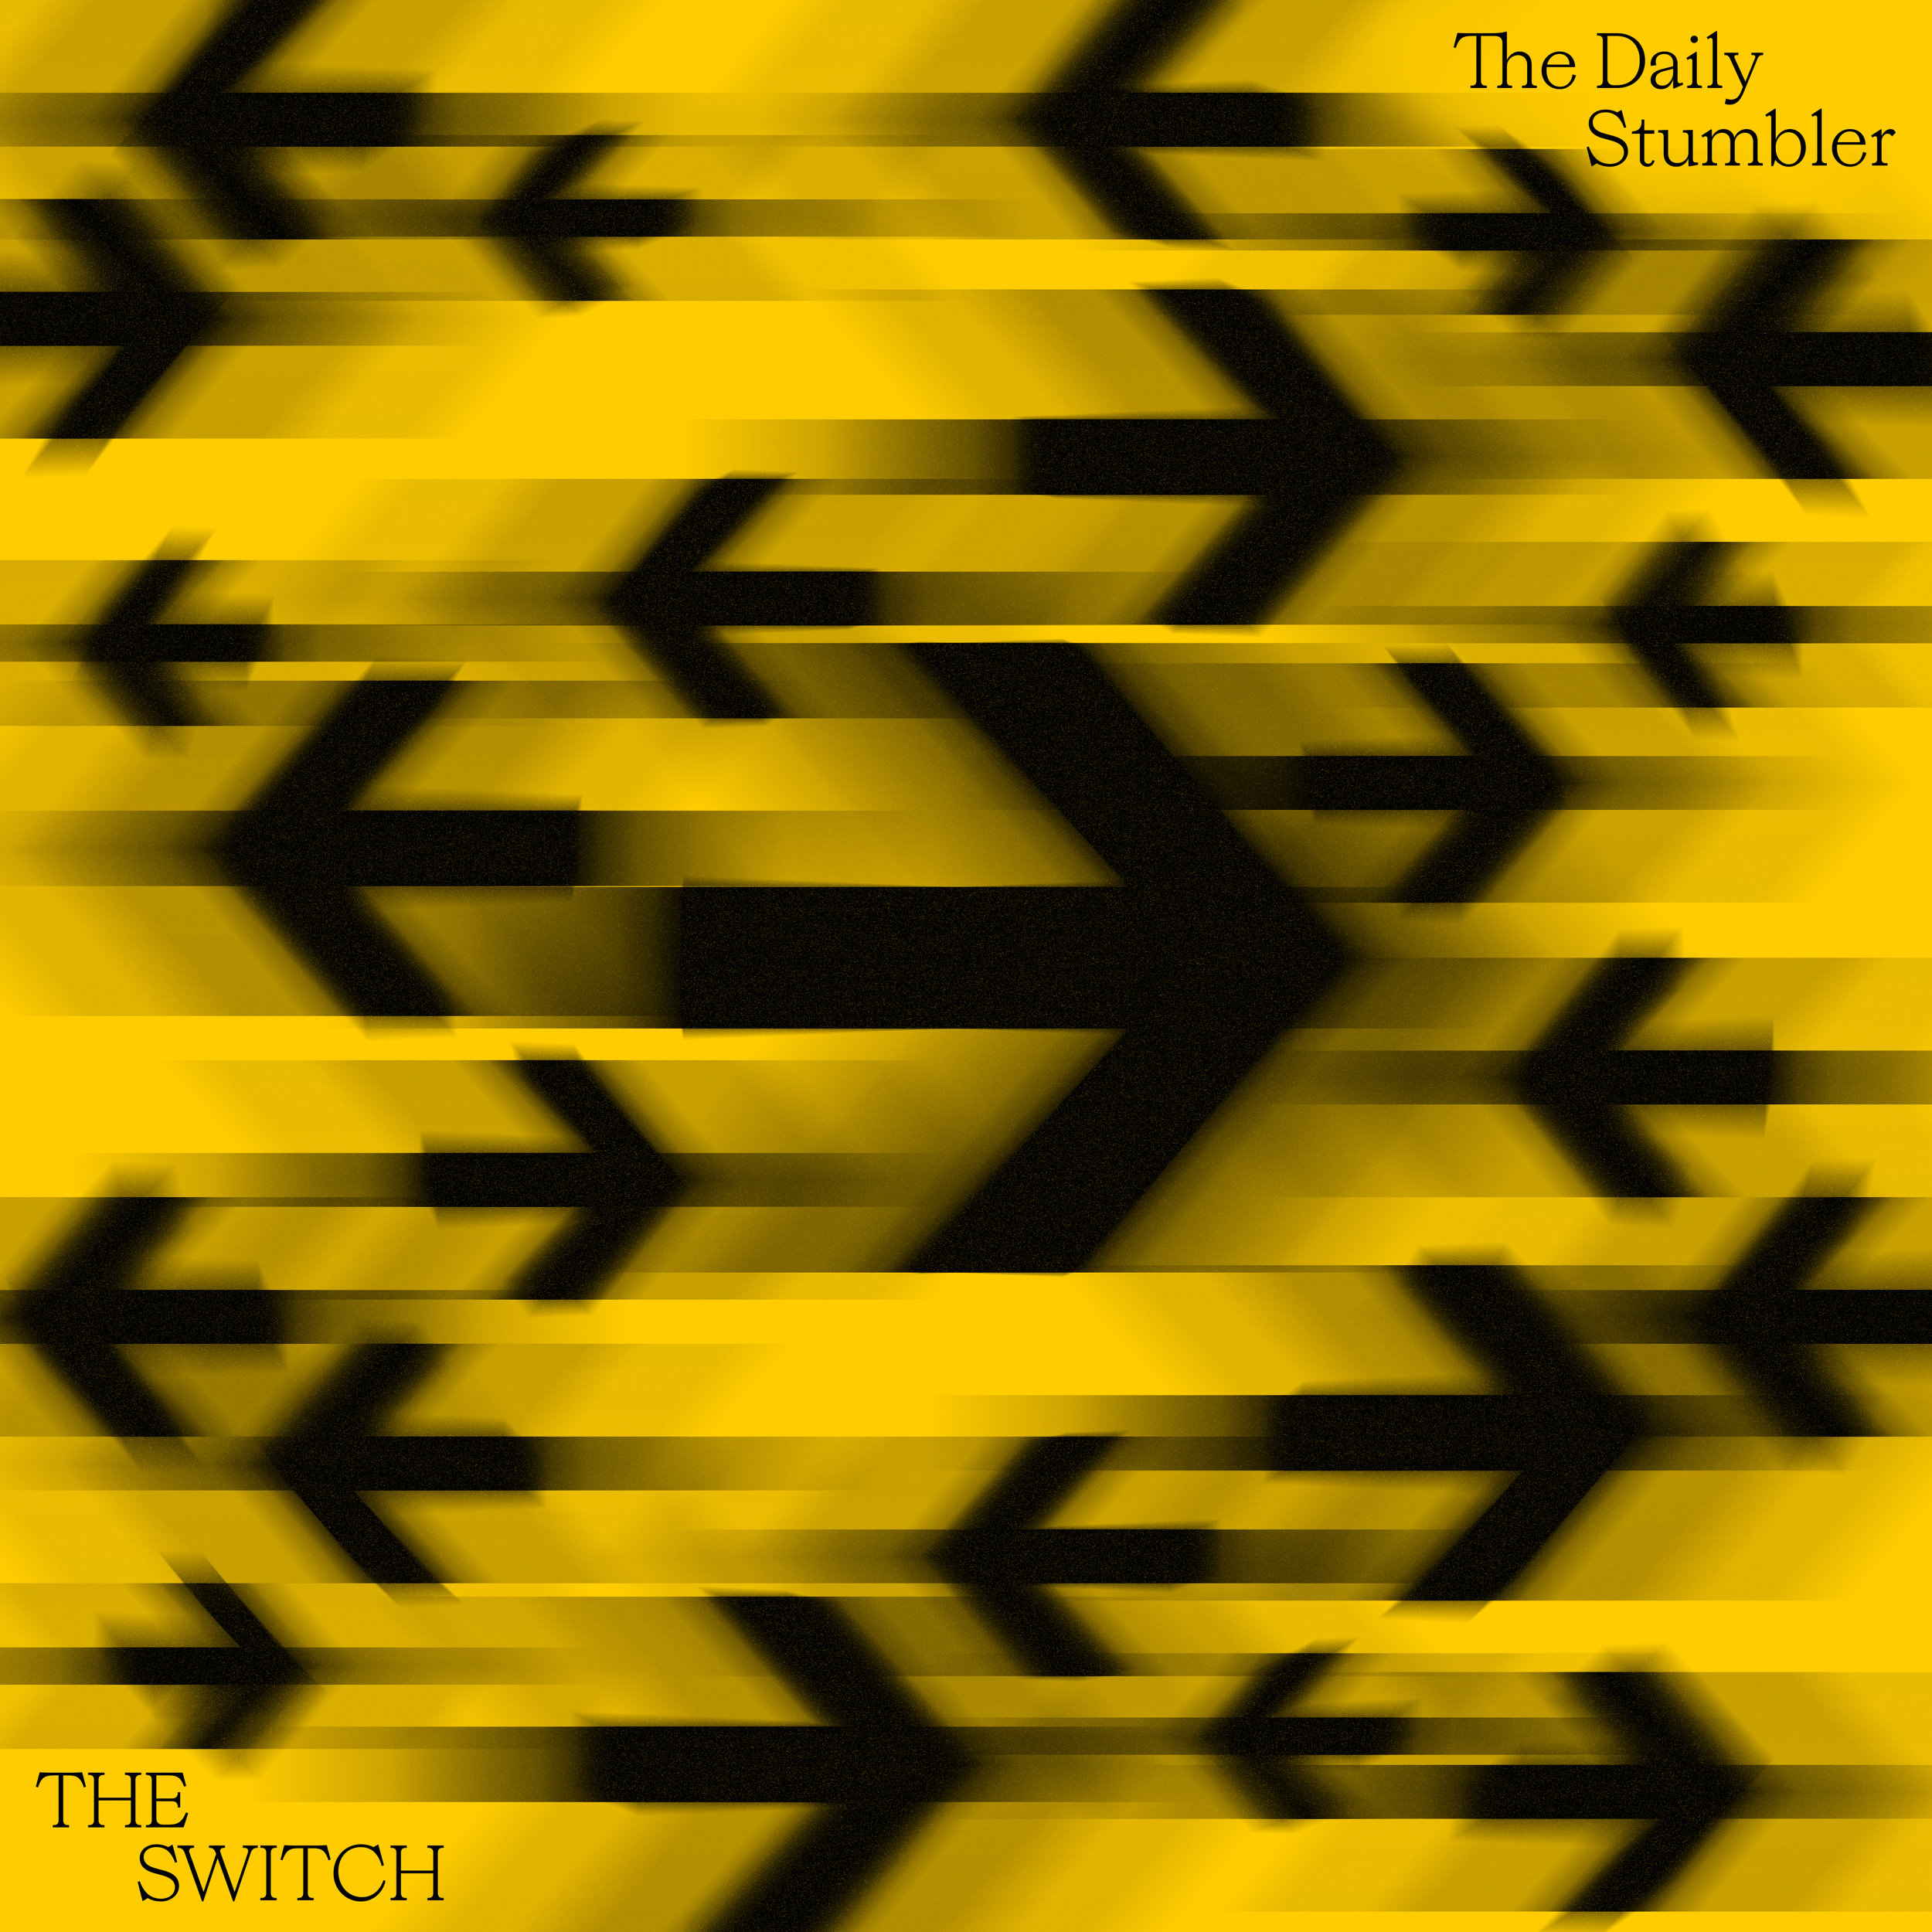 © The Switch, 2019. All songs written by The Daily Stumbler. Available digitally in all common stores. Produced by The Daily Stumbler and Dave Demuth. Recorded by Dave Demuth at Klangstelle, Steinmaur. Mixed and mastered by Oli Bösch at Studio U3, Bern. Performing musicians on this EP: David Buntschu (vocals, acoustic and electric guitar, keys), Andreas Schelker (drums, percussion), Dave Demuth (bass), David Hasler (guitar), Lukas Blattner (keys, percussion) and Pascal Fernandes (flugelhorn, trumpet). Artwork by Tim Frei and Marius Disler. The Daily Stumbler thanks more than 30 funders as well as the City of Lucerne (FUKA-Fonds) and regionalkonferenz kultur region luzern (RKK) for their financial support. Special thanks go to the band, Joël, Petra, Marius, Elia, David, Walter, Brigitte, Timo, Béla, Lukas and Chantal.   Pre-order now   Tracklist:  Bathe In The Sun (3:12) In Your Hands (3:32) Quiet (4:12) Economy (3:23)